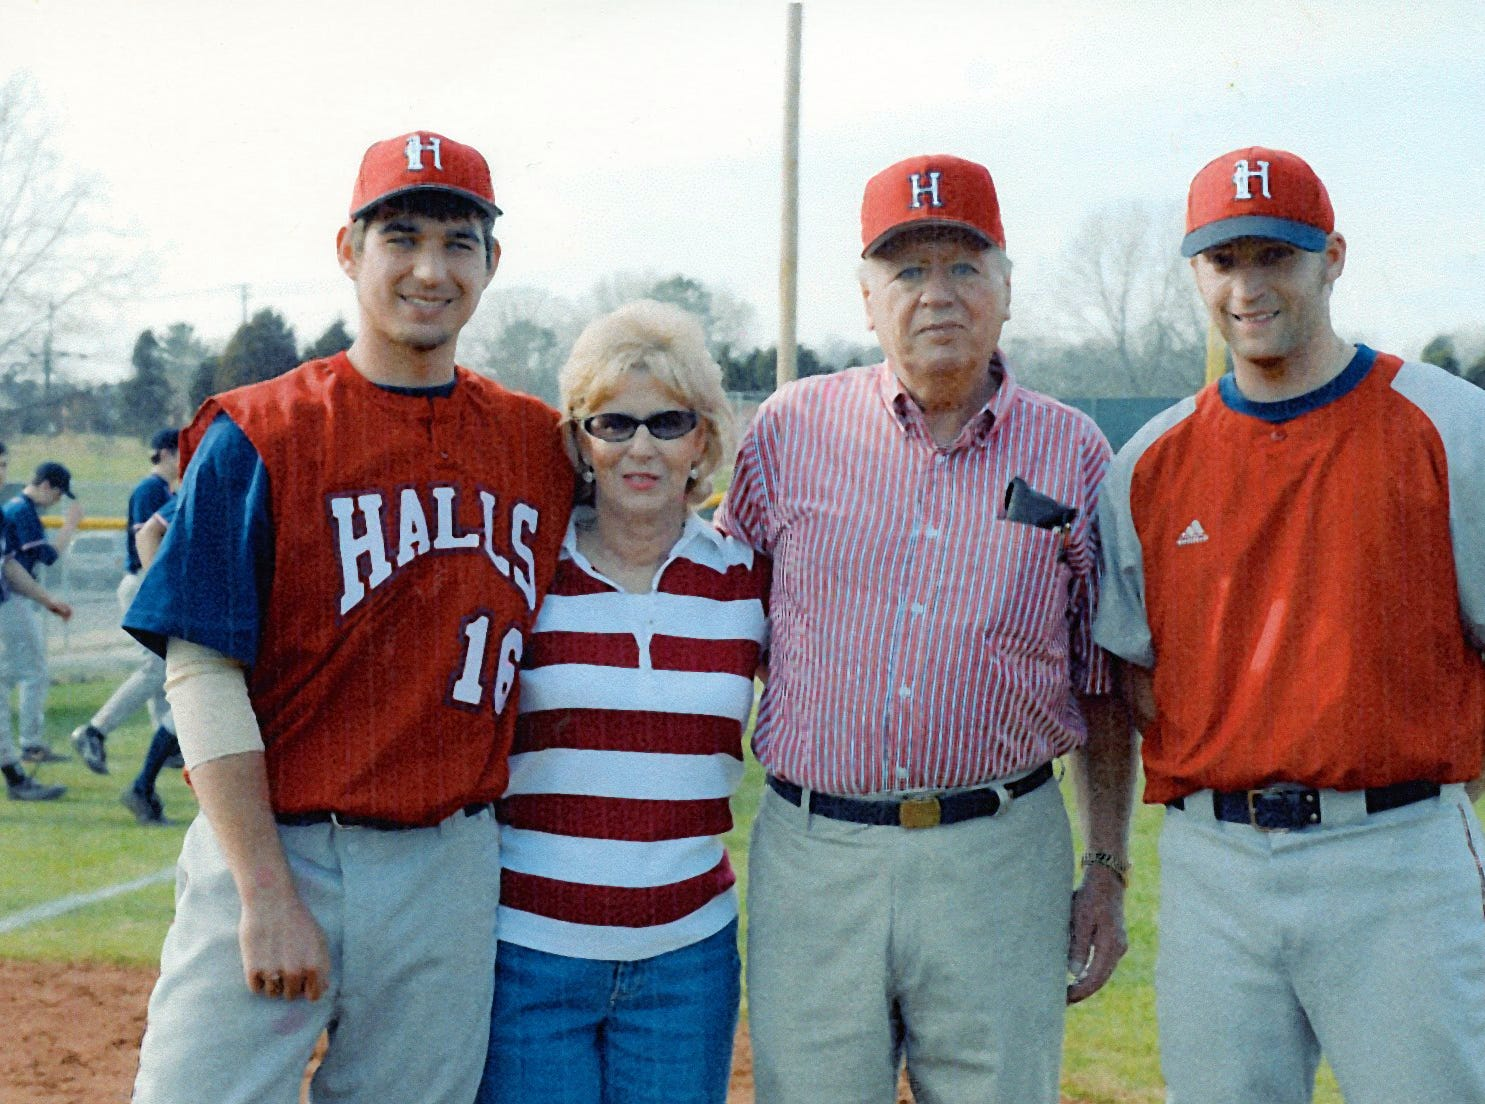 David White, Mary and Hugh Newsom and HHS assistant coach David McMahon gathered at home plate of a 2007 Halls High baseball game. The Chris Newsom Memorial Tournament was established in 2008 with scholarship money being distributed beginning in 2009. The Newsoms were presented with a plaque that was placed on a building at the HHS ball field prior to the first pitch of this game in March, 2007.